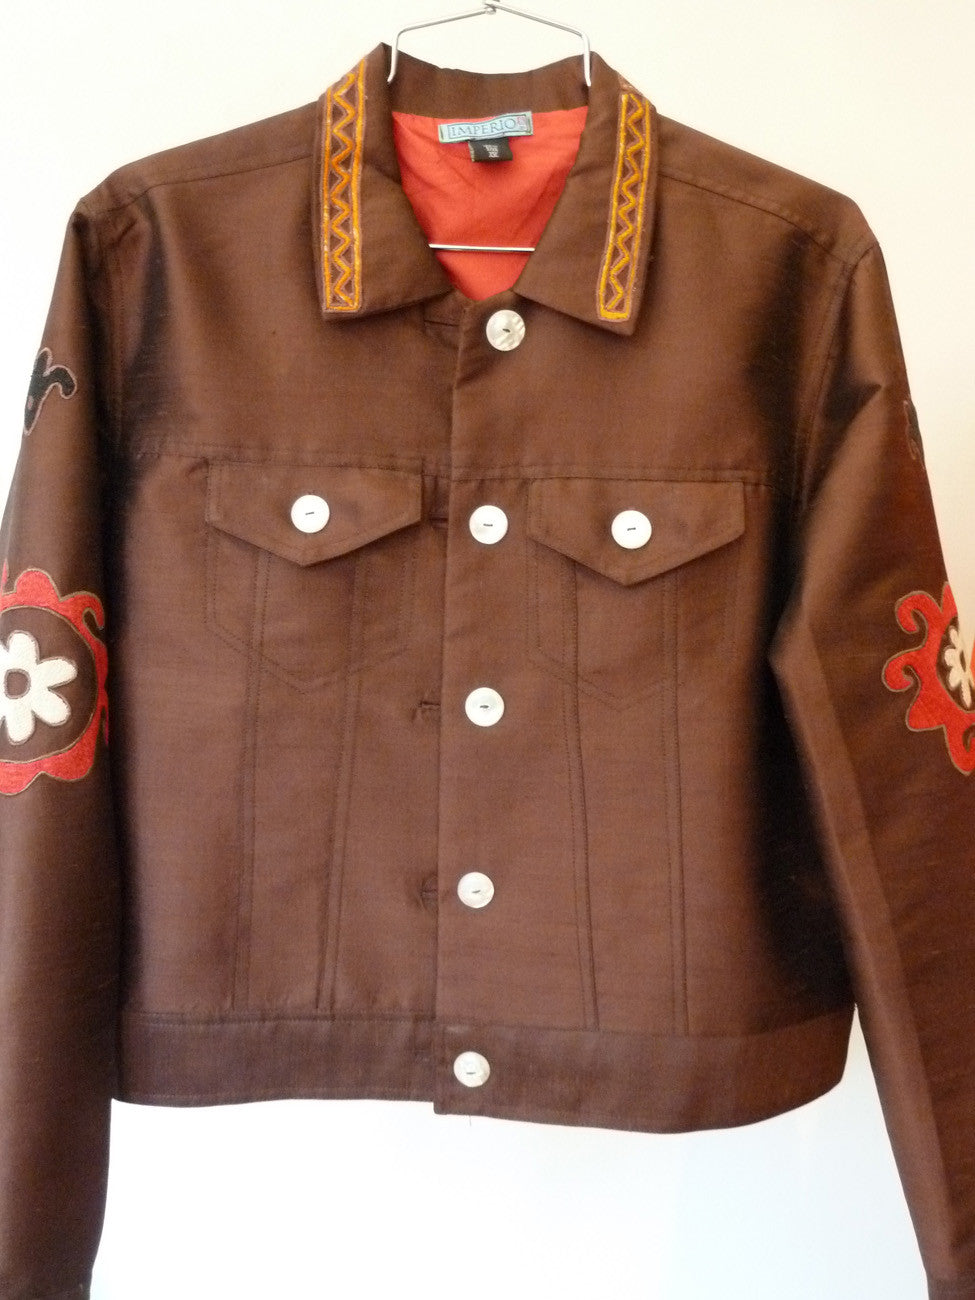 Jean Jacket Vintage Suzani Embroidery Chocolate Coral